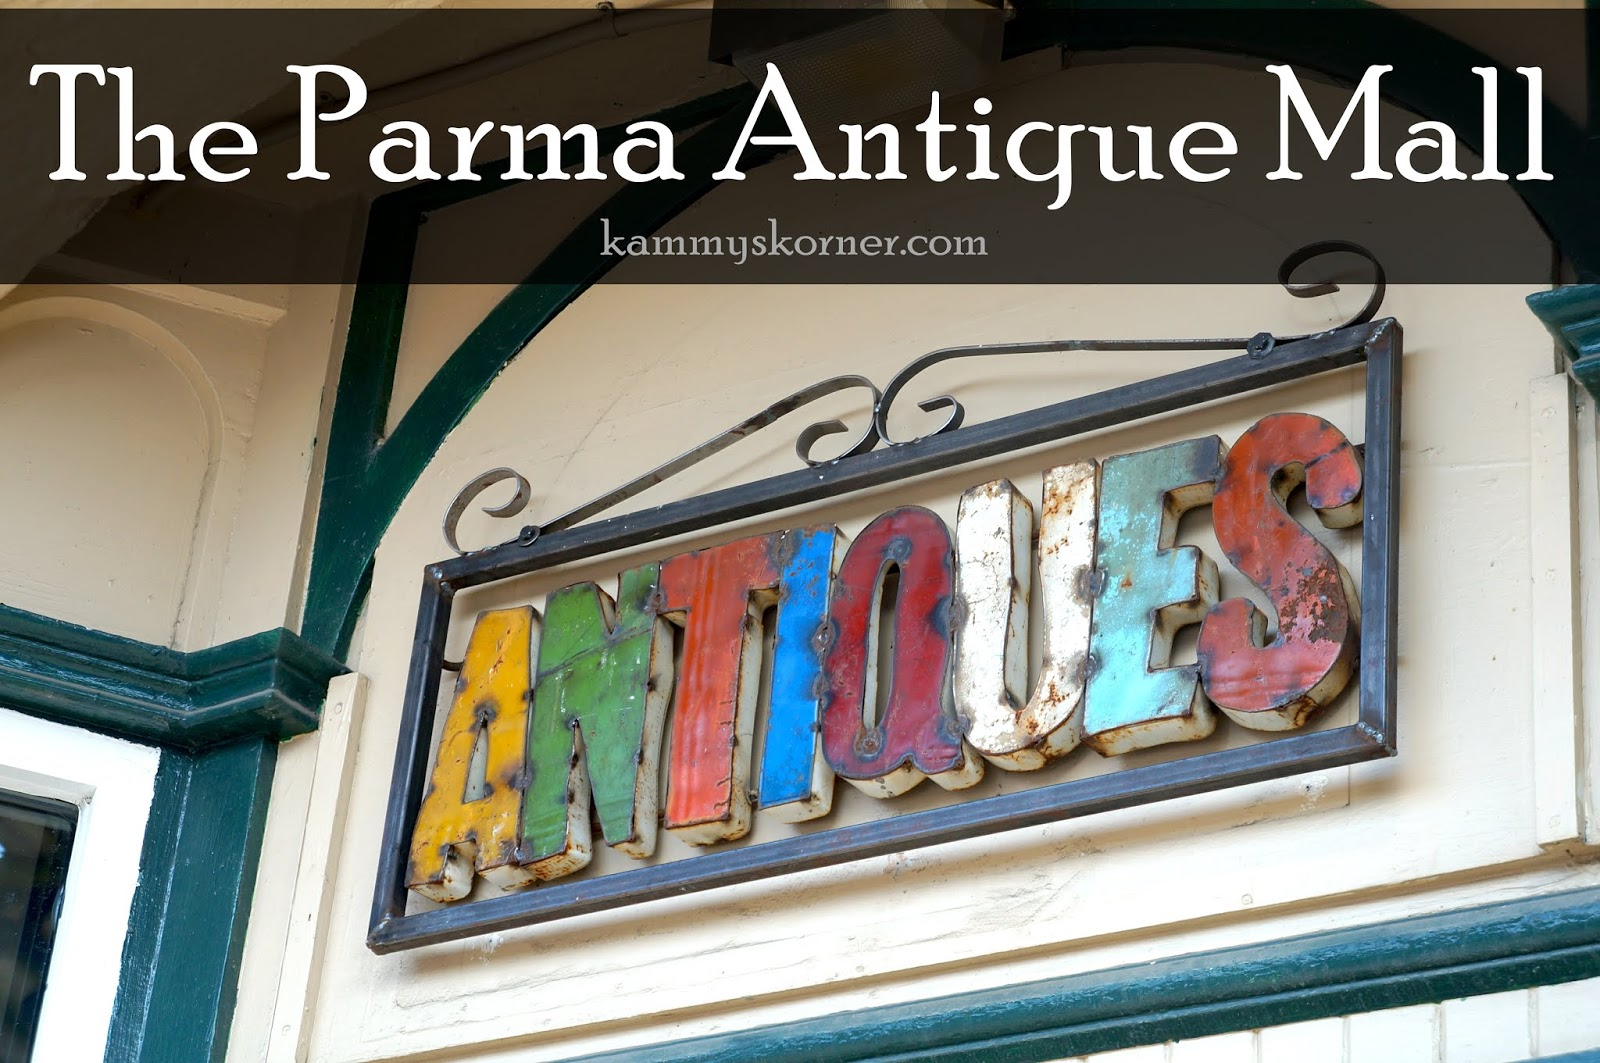 Kammy's Korner: NOW OPEN! The Parma Antique Mall Upstairs!